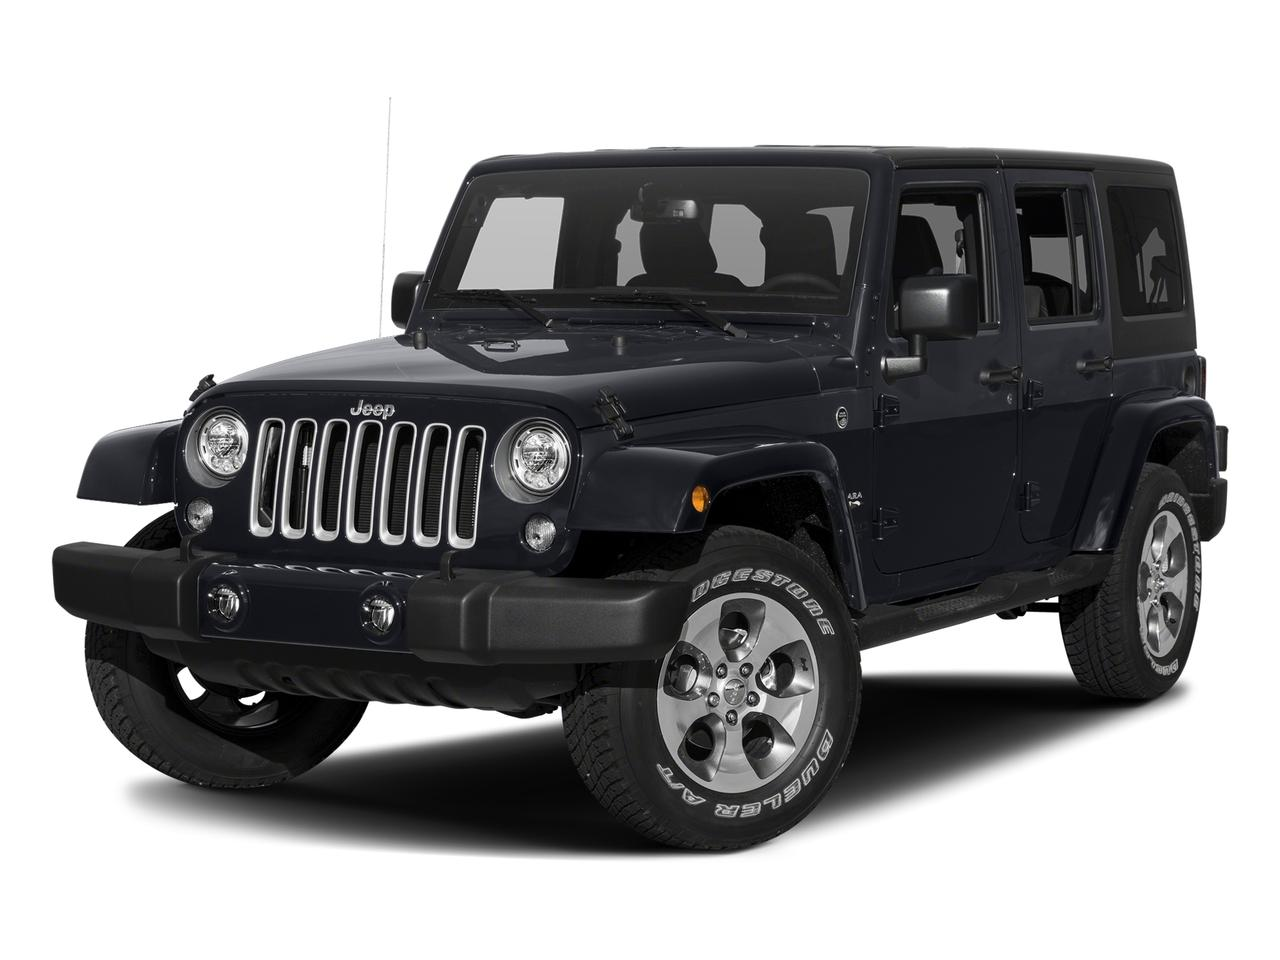 2017 Jeep Wrangler Unlimited Vehicle Photo in Elyria, OH 44035